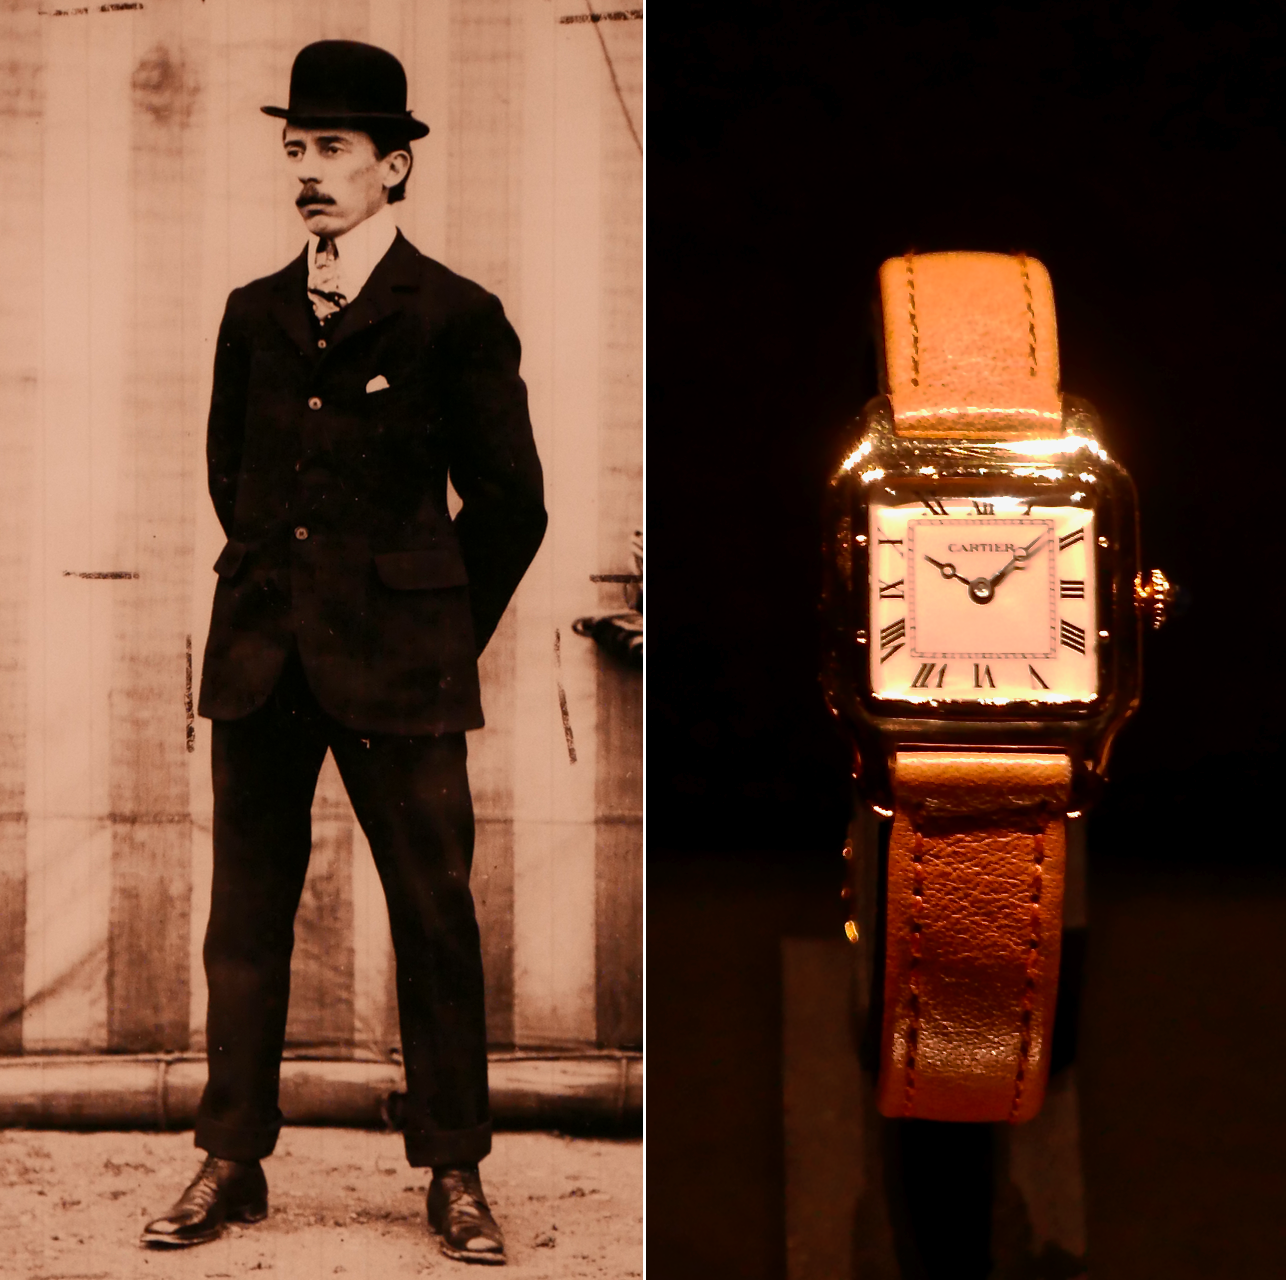 Alberto Santos-Dumont and the watch that bears his name created for him by Louis Cartier.